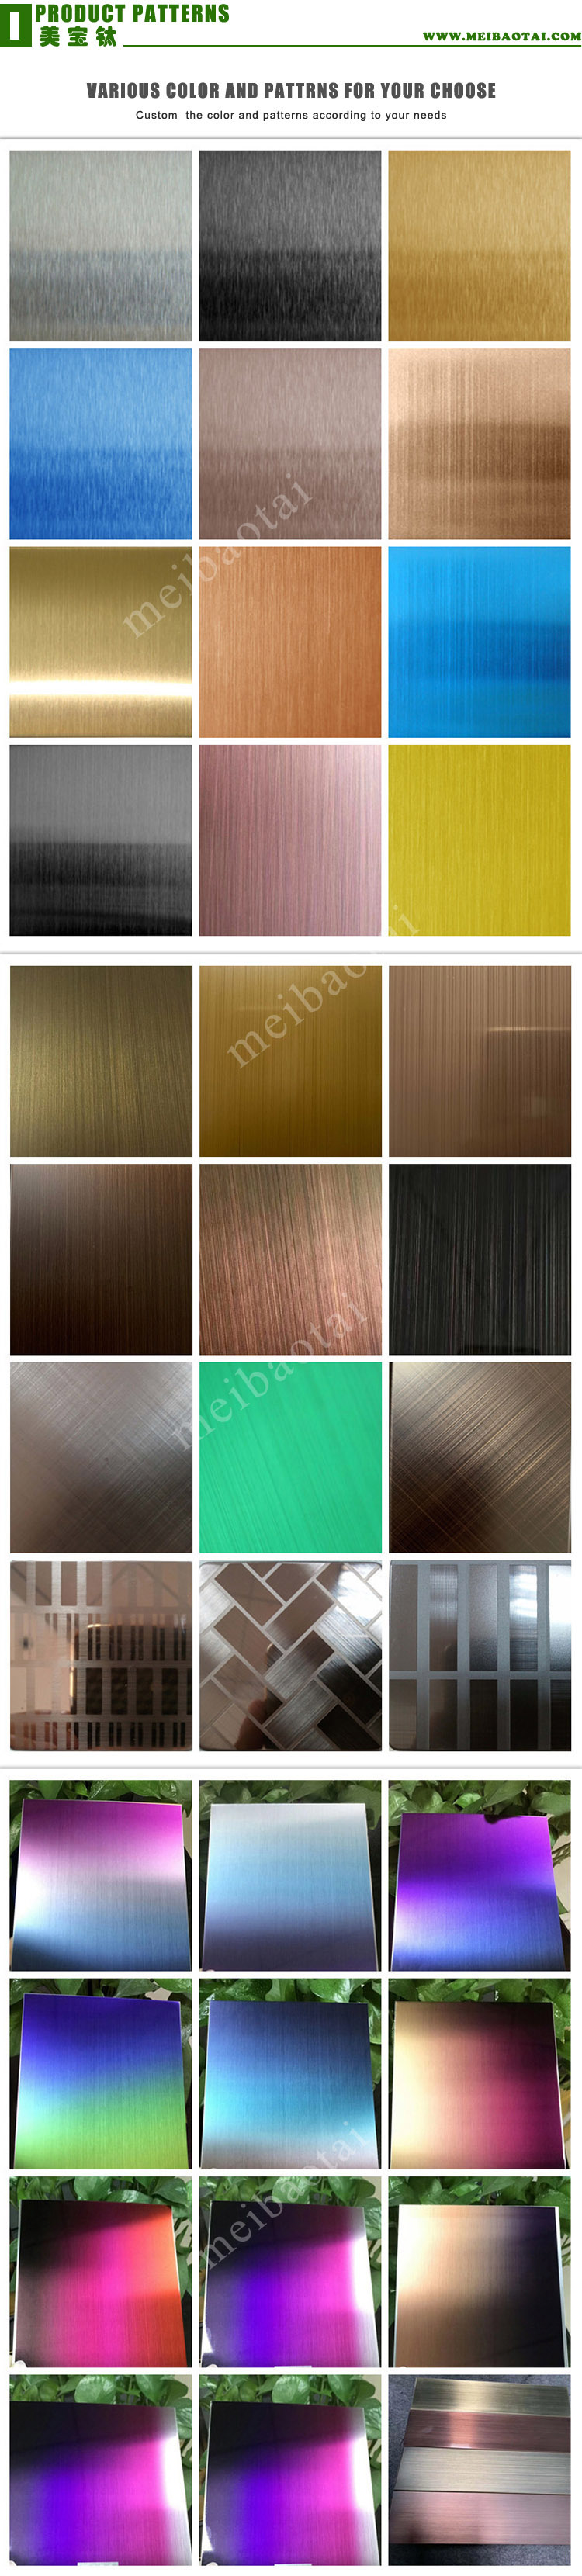 hairline_products_patterns